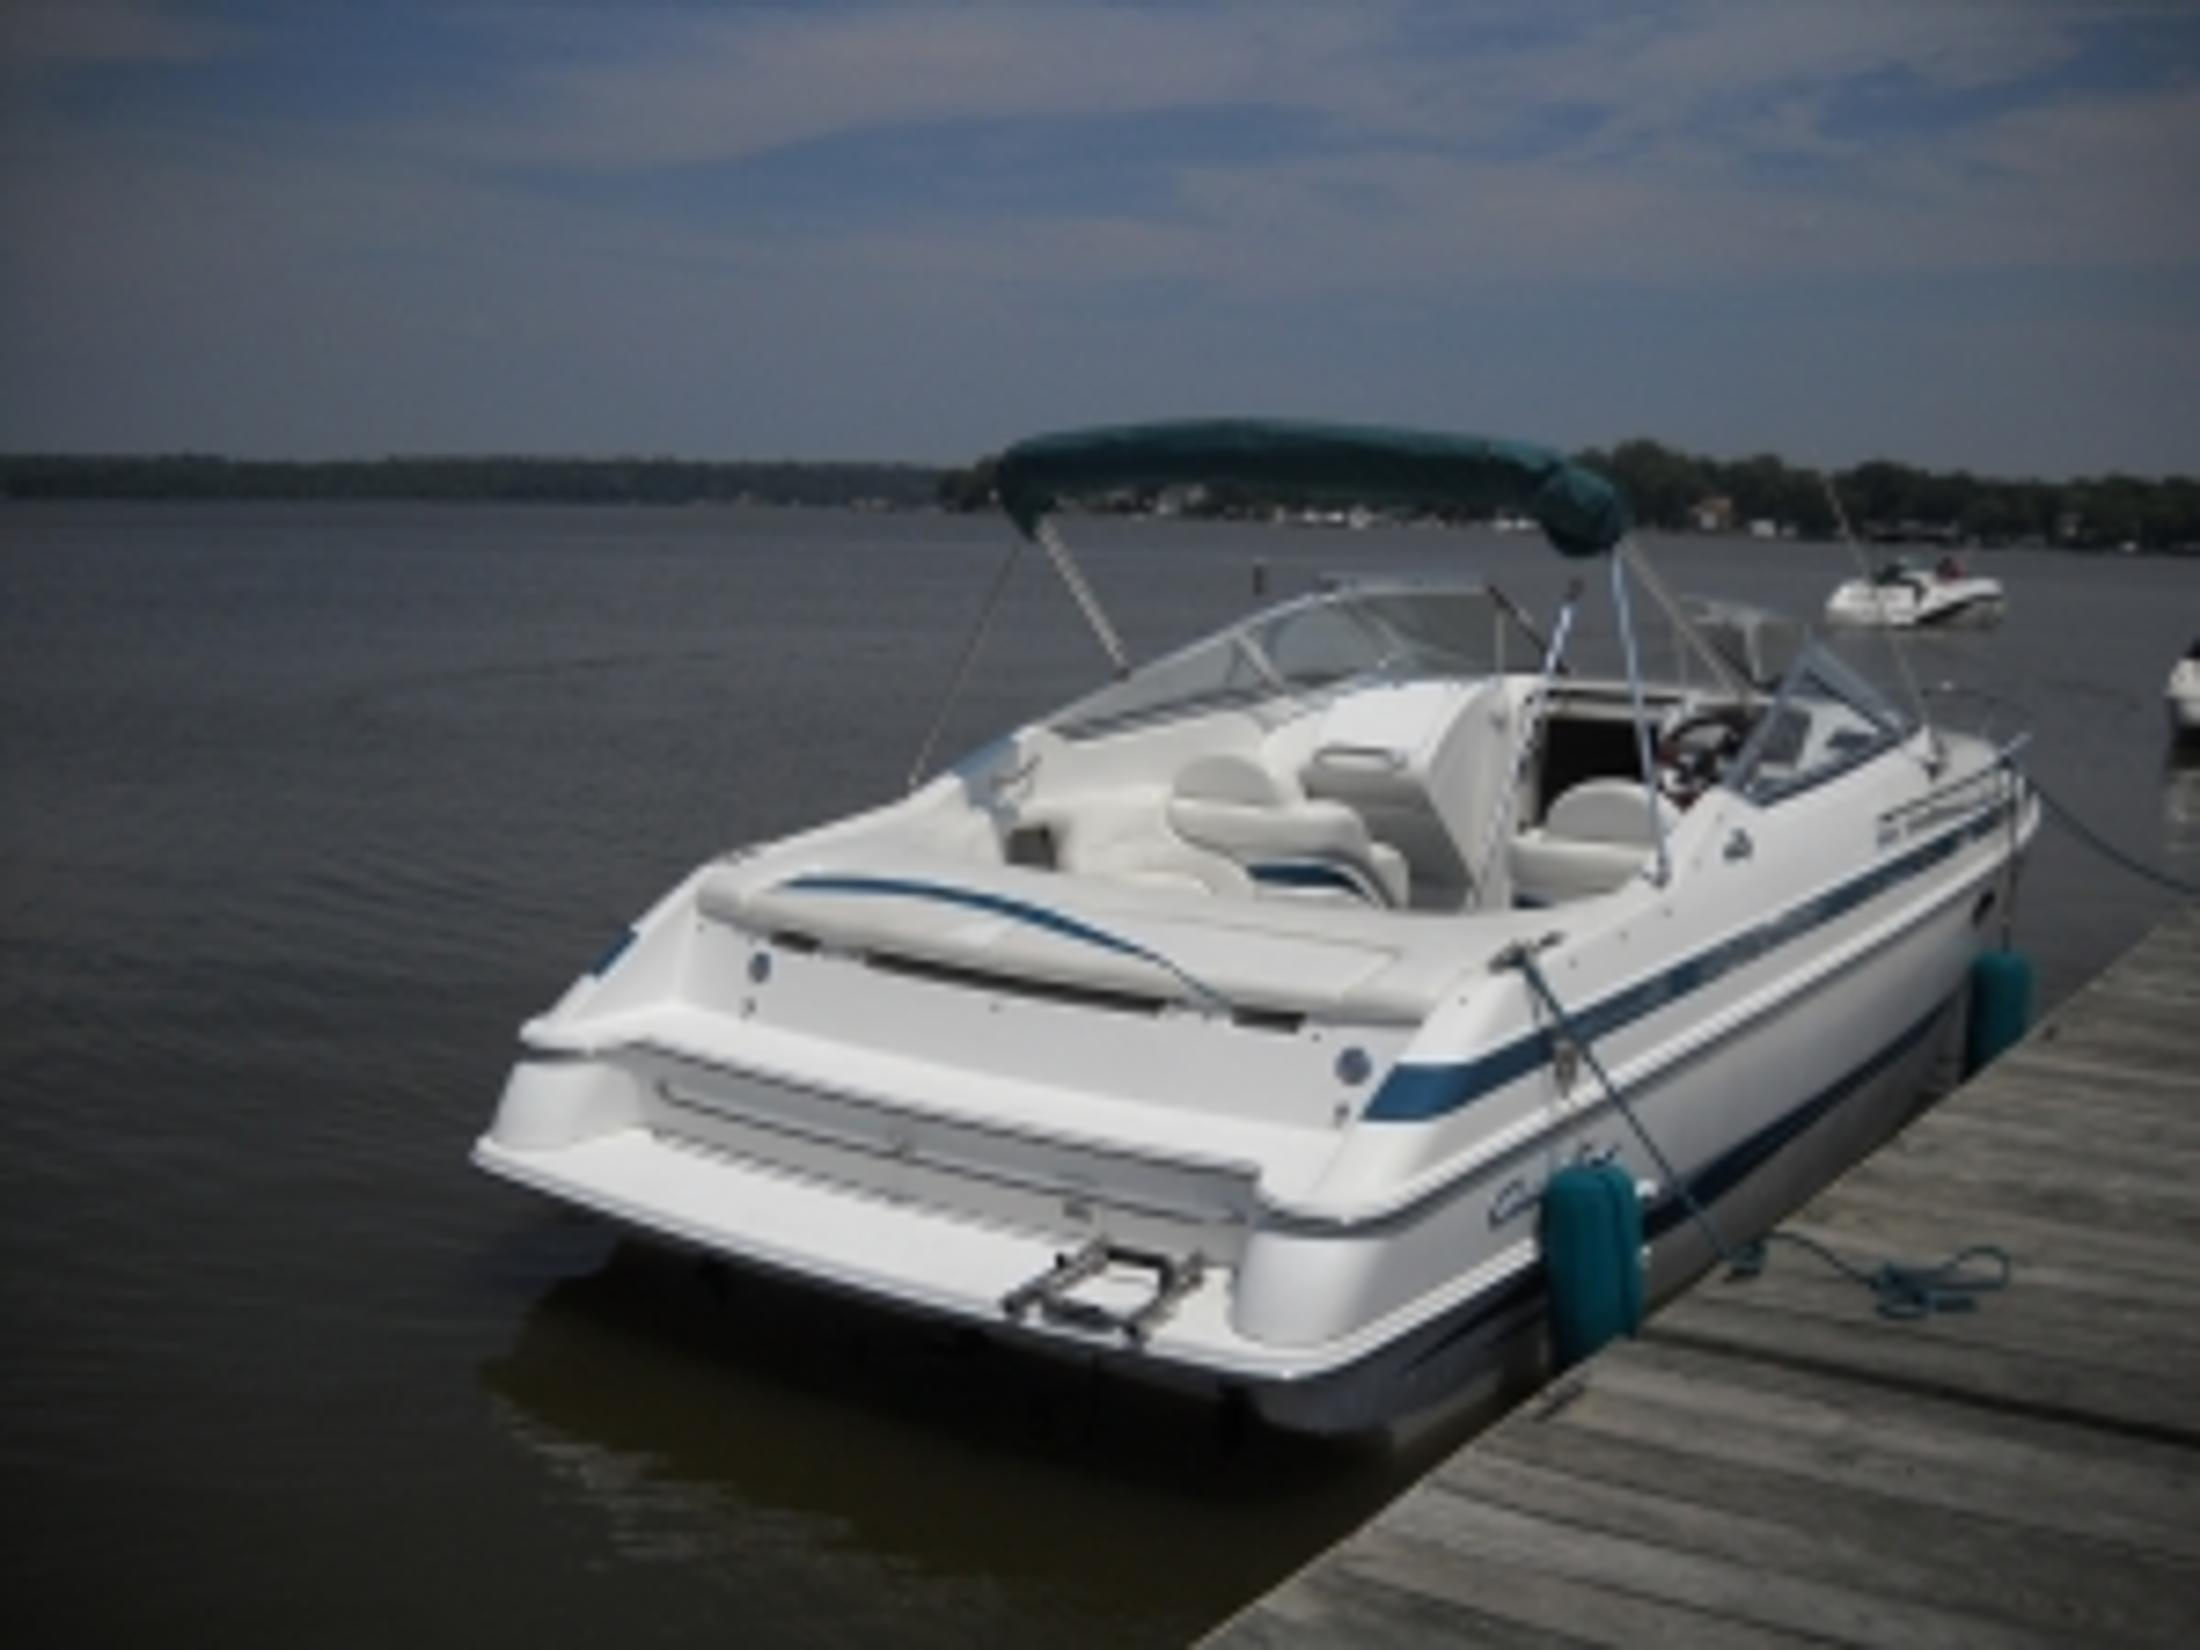 Elkton (FL) United States  city pictures gallery : 1997 Chris Craft1 CONCEPT Power Boat For Sale www.yachtworld.com